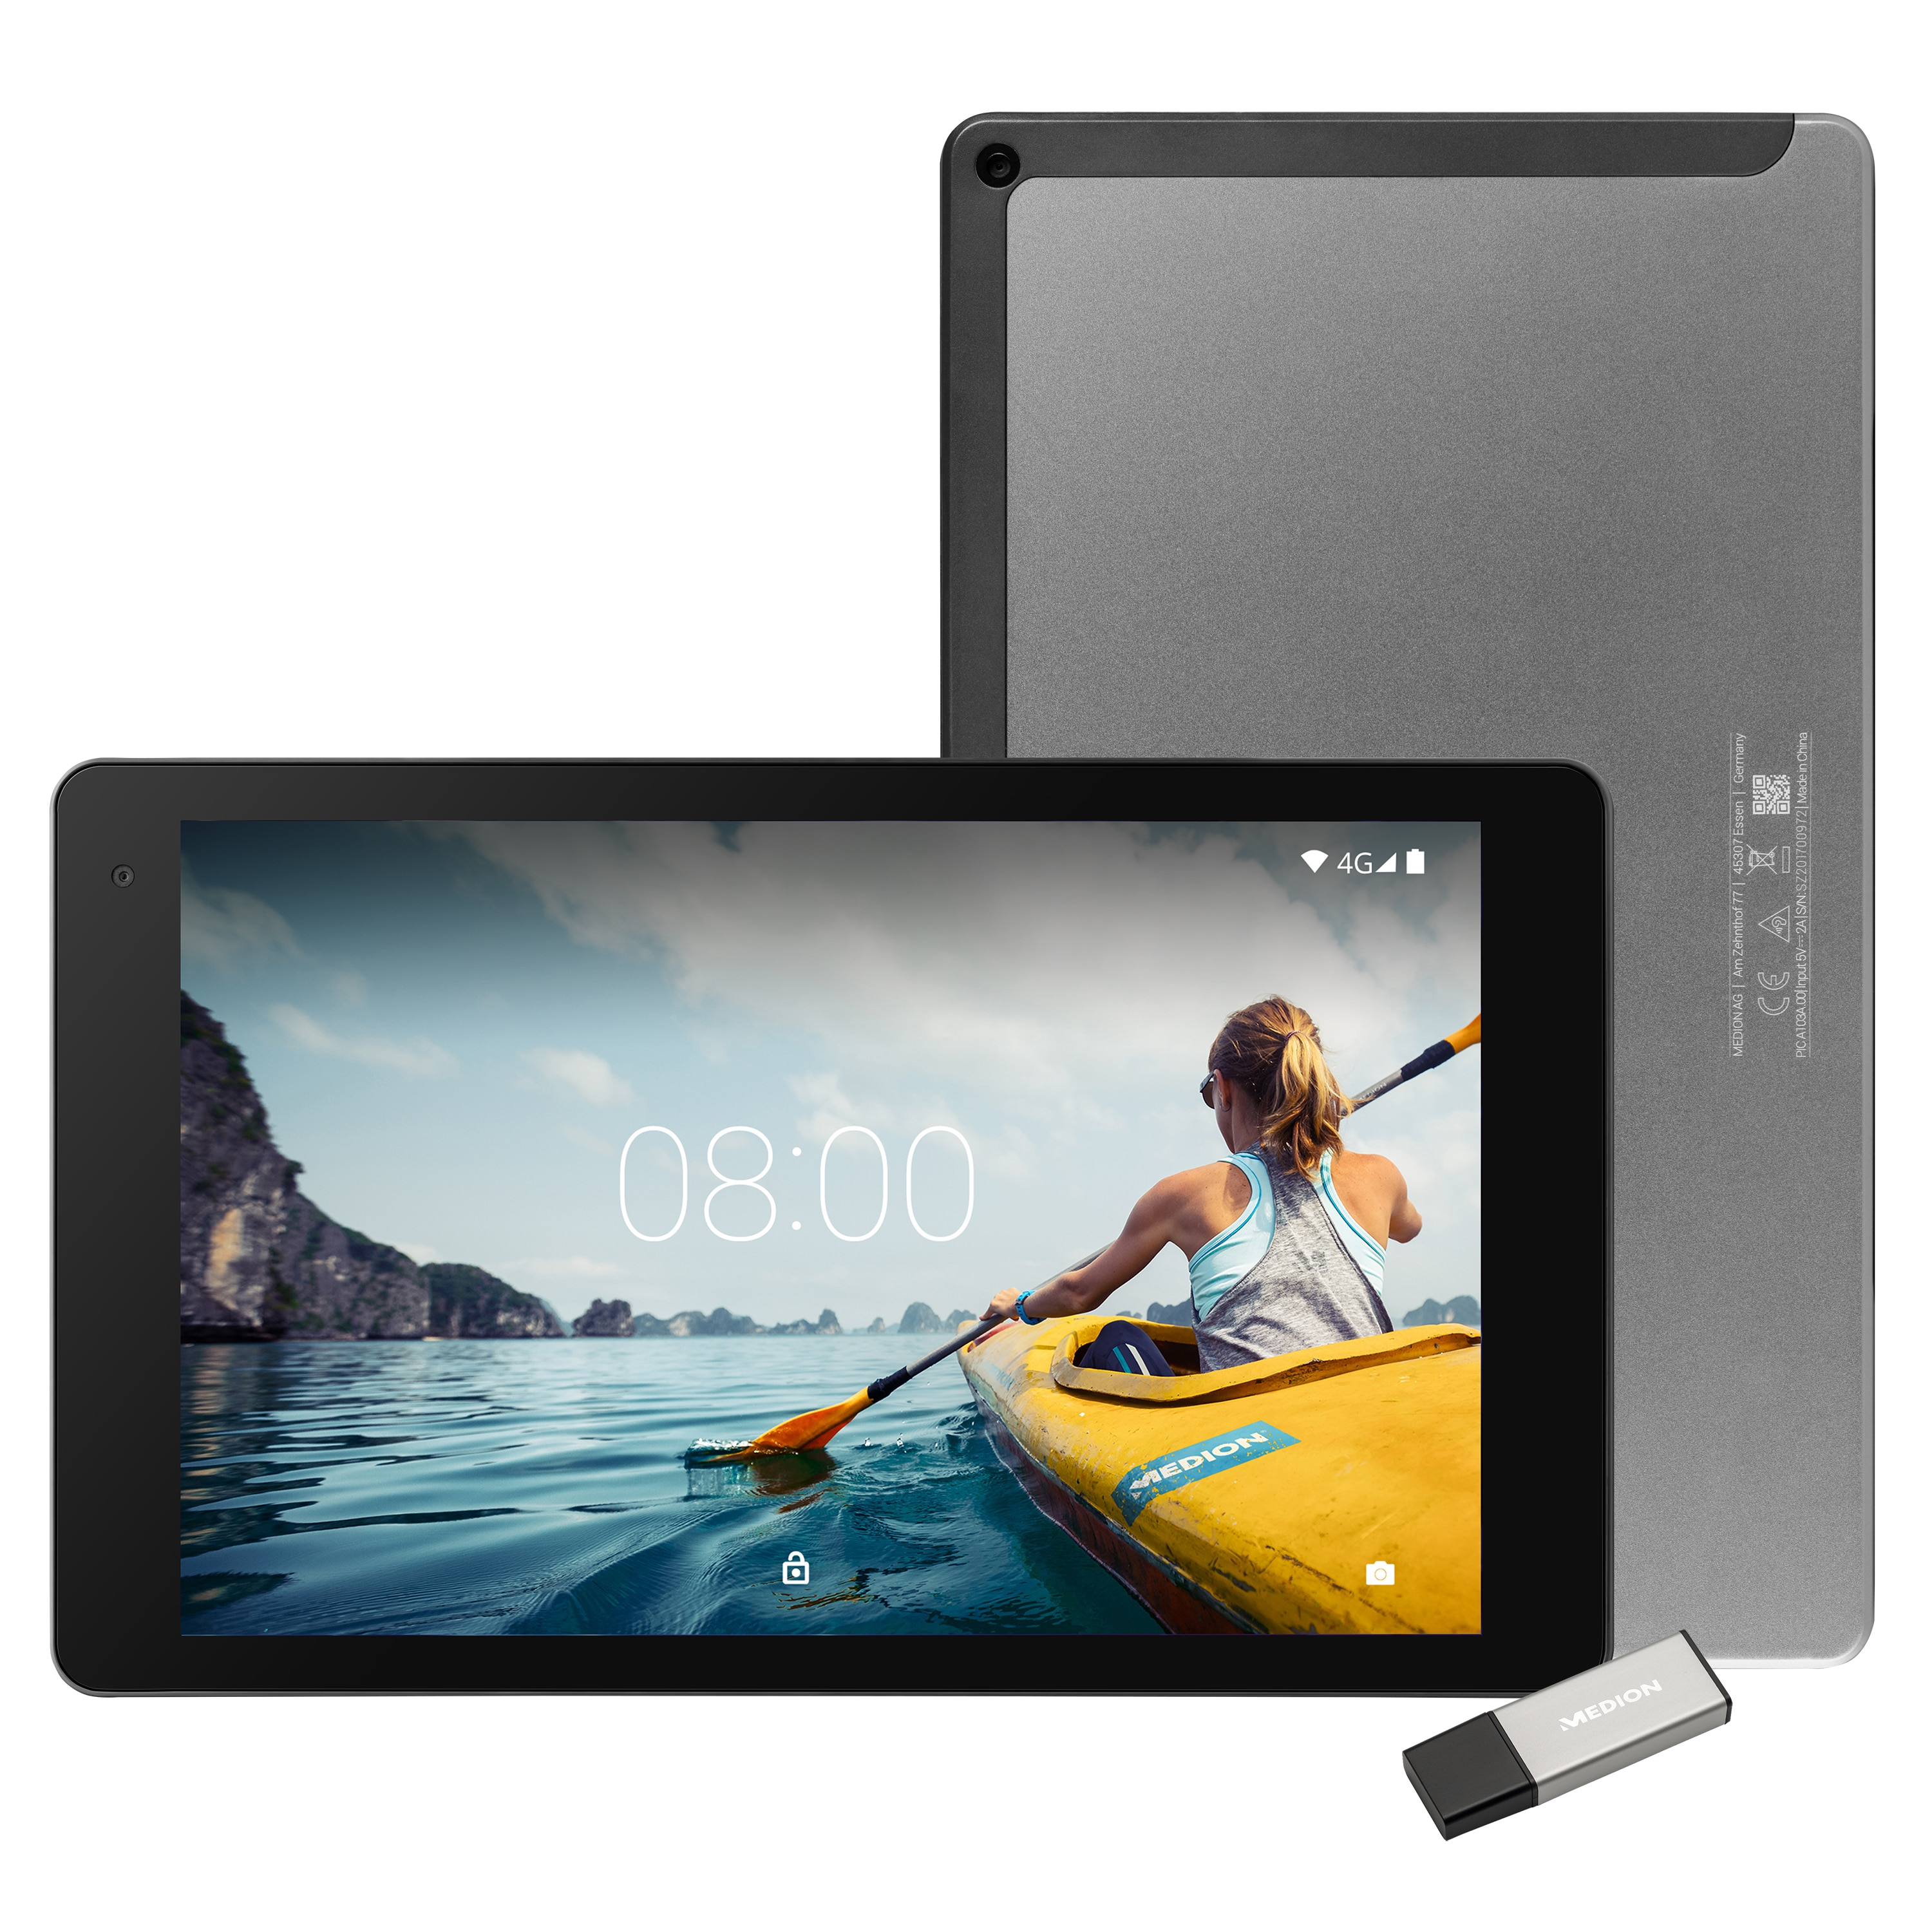 """MEDION® LIFETAB® X10605 Tablet, 25,7 cm (10,1"""") FHD Display mit Corning® Gorilla® Glass, Update auf Android™ 8, 32 GB Speicher, Octa Core Prozessor, LTE, Quick Charge, inkl. USB Stick"""